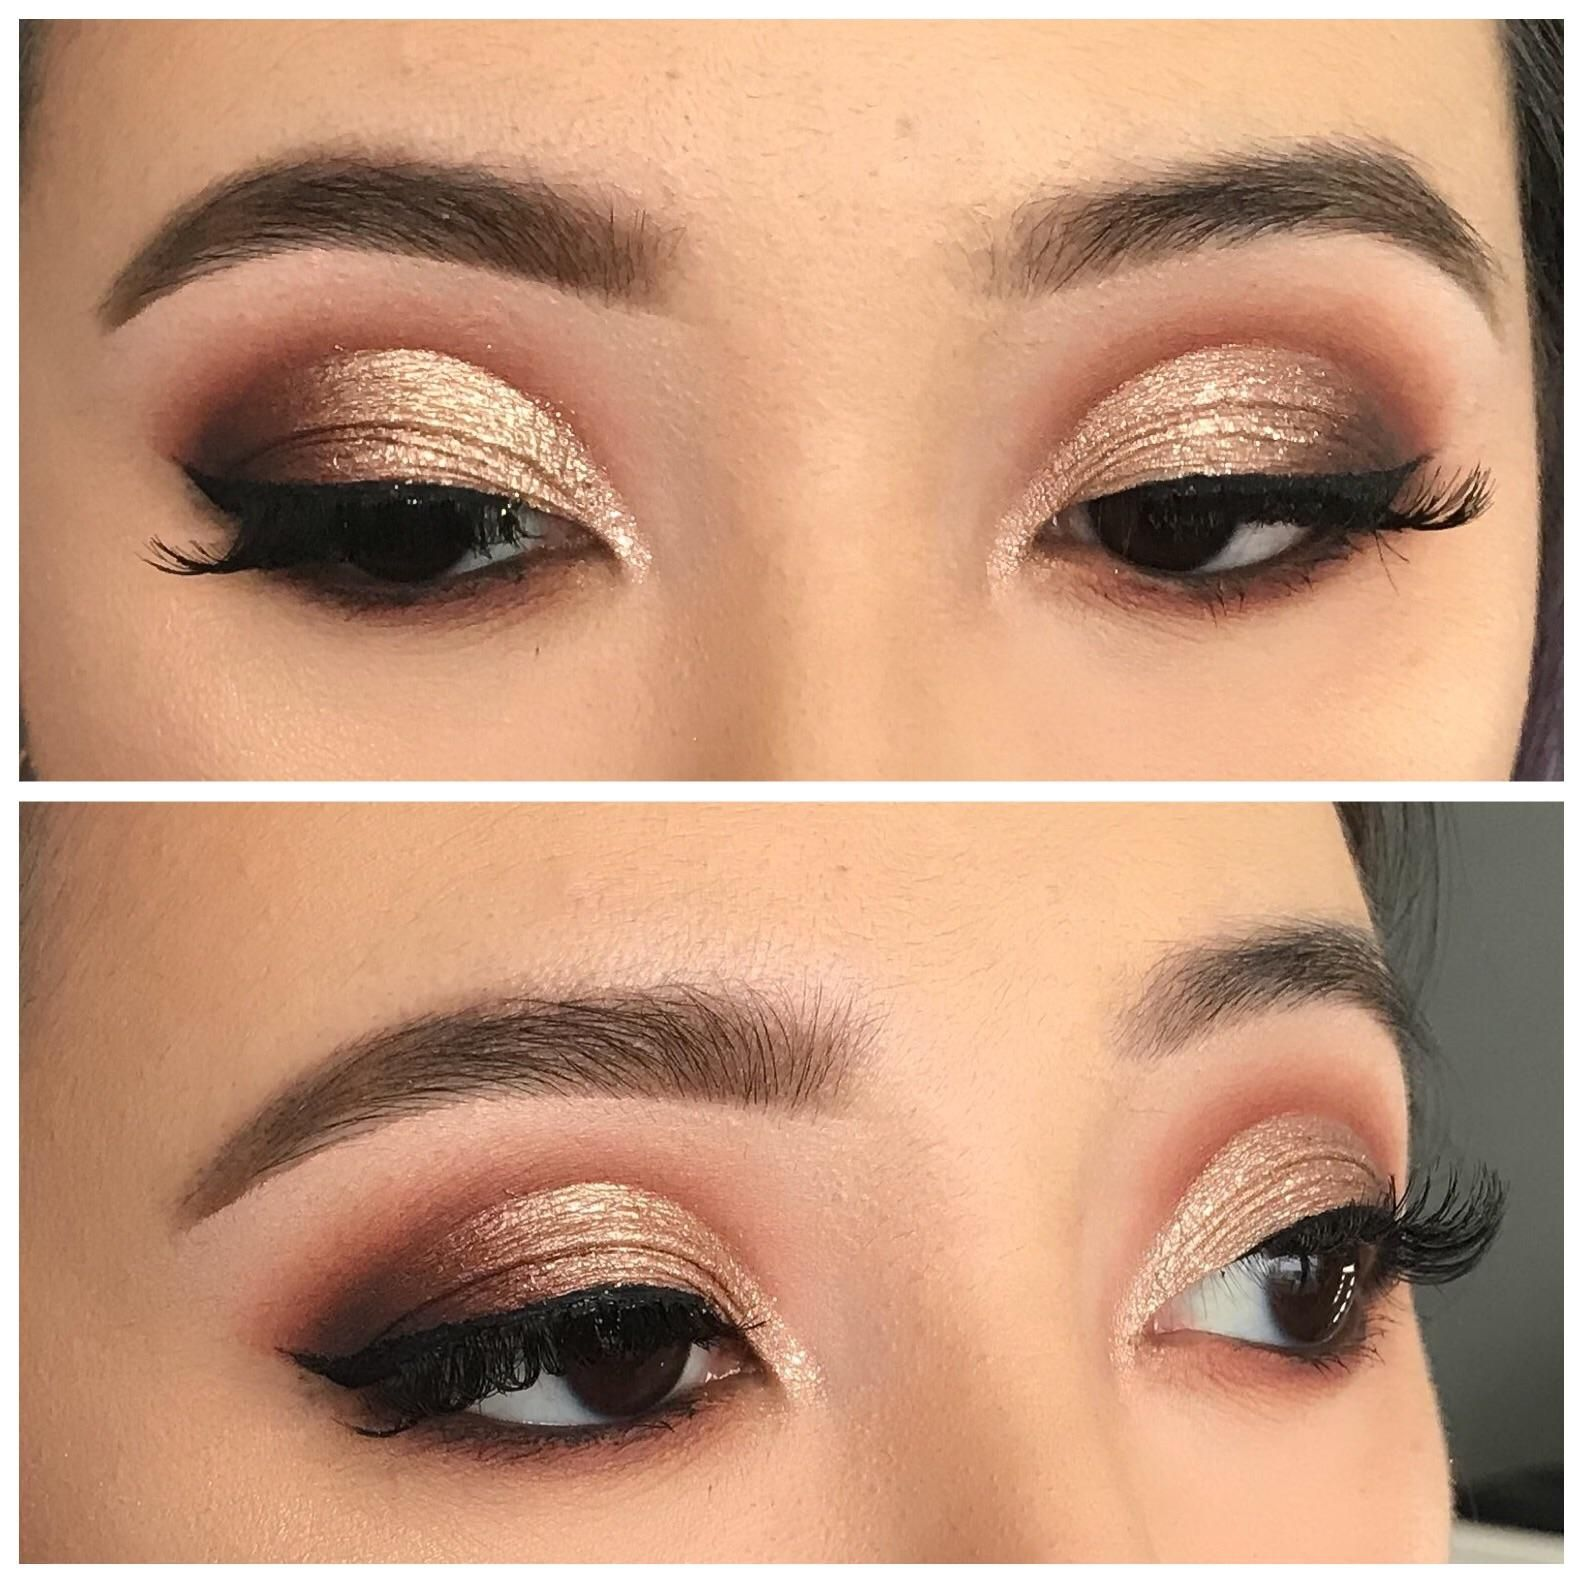 Makeup for asian eyes for that